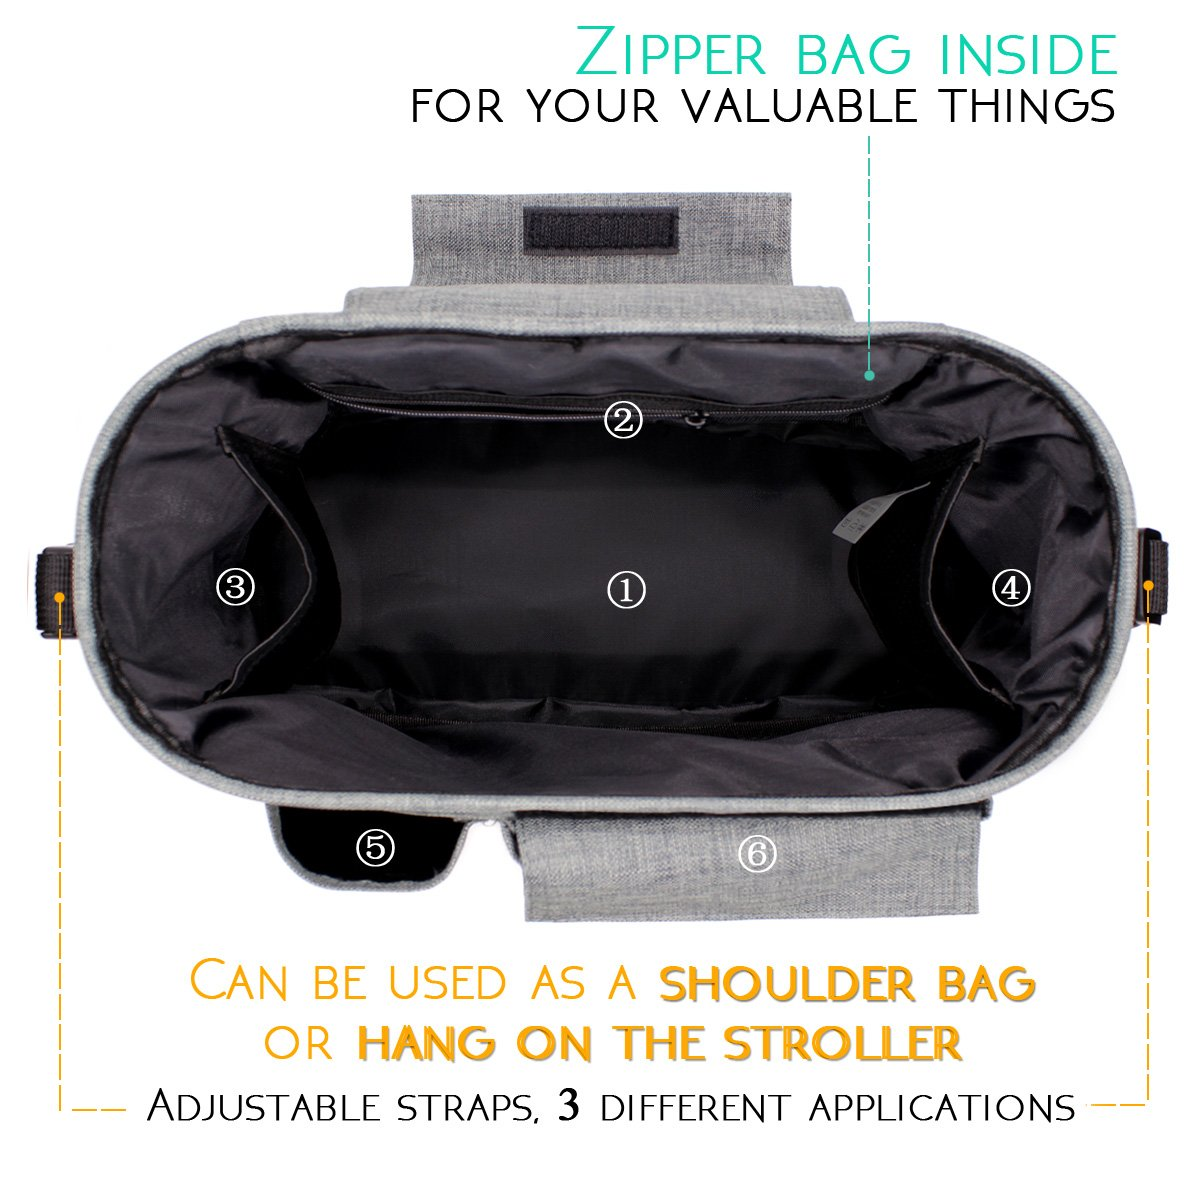 Airlab Stroller Organizer, Parents Organizer Bag, 2 inch Enlarge, Deep Bottle Cup Holder, Extra-Large Storage Space Fits Universal Stroller for Baby Accessories, Diapers, iPhone, Wallets, Waterproof by Airlab (Image #2)